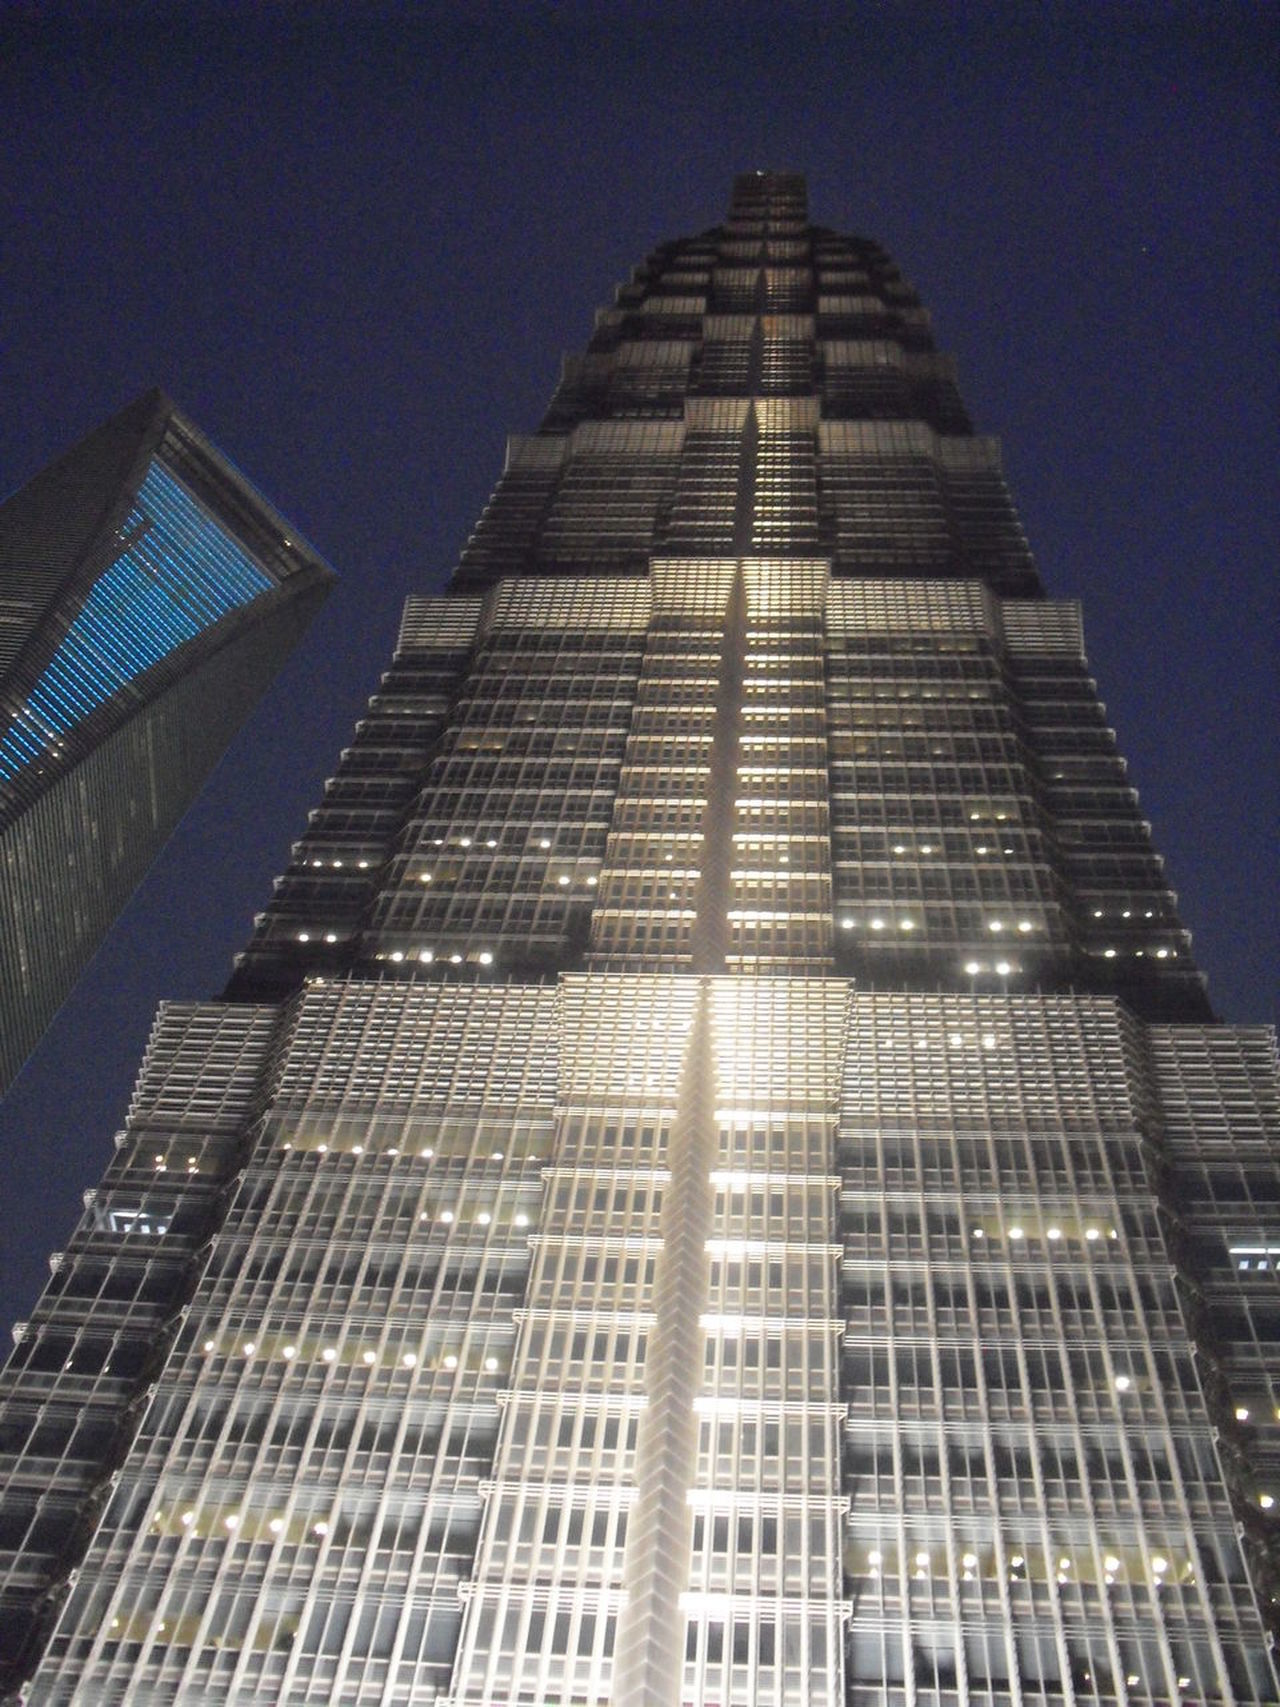 Architecture Blue China Dark Illuminated Jin Mao Tower Low Angle Shot Low Angle View Night Shanghai Shanghai World Financial Center Sky Scraper Tall High